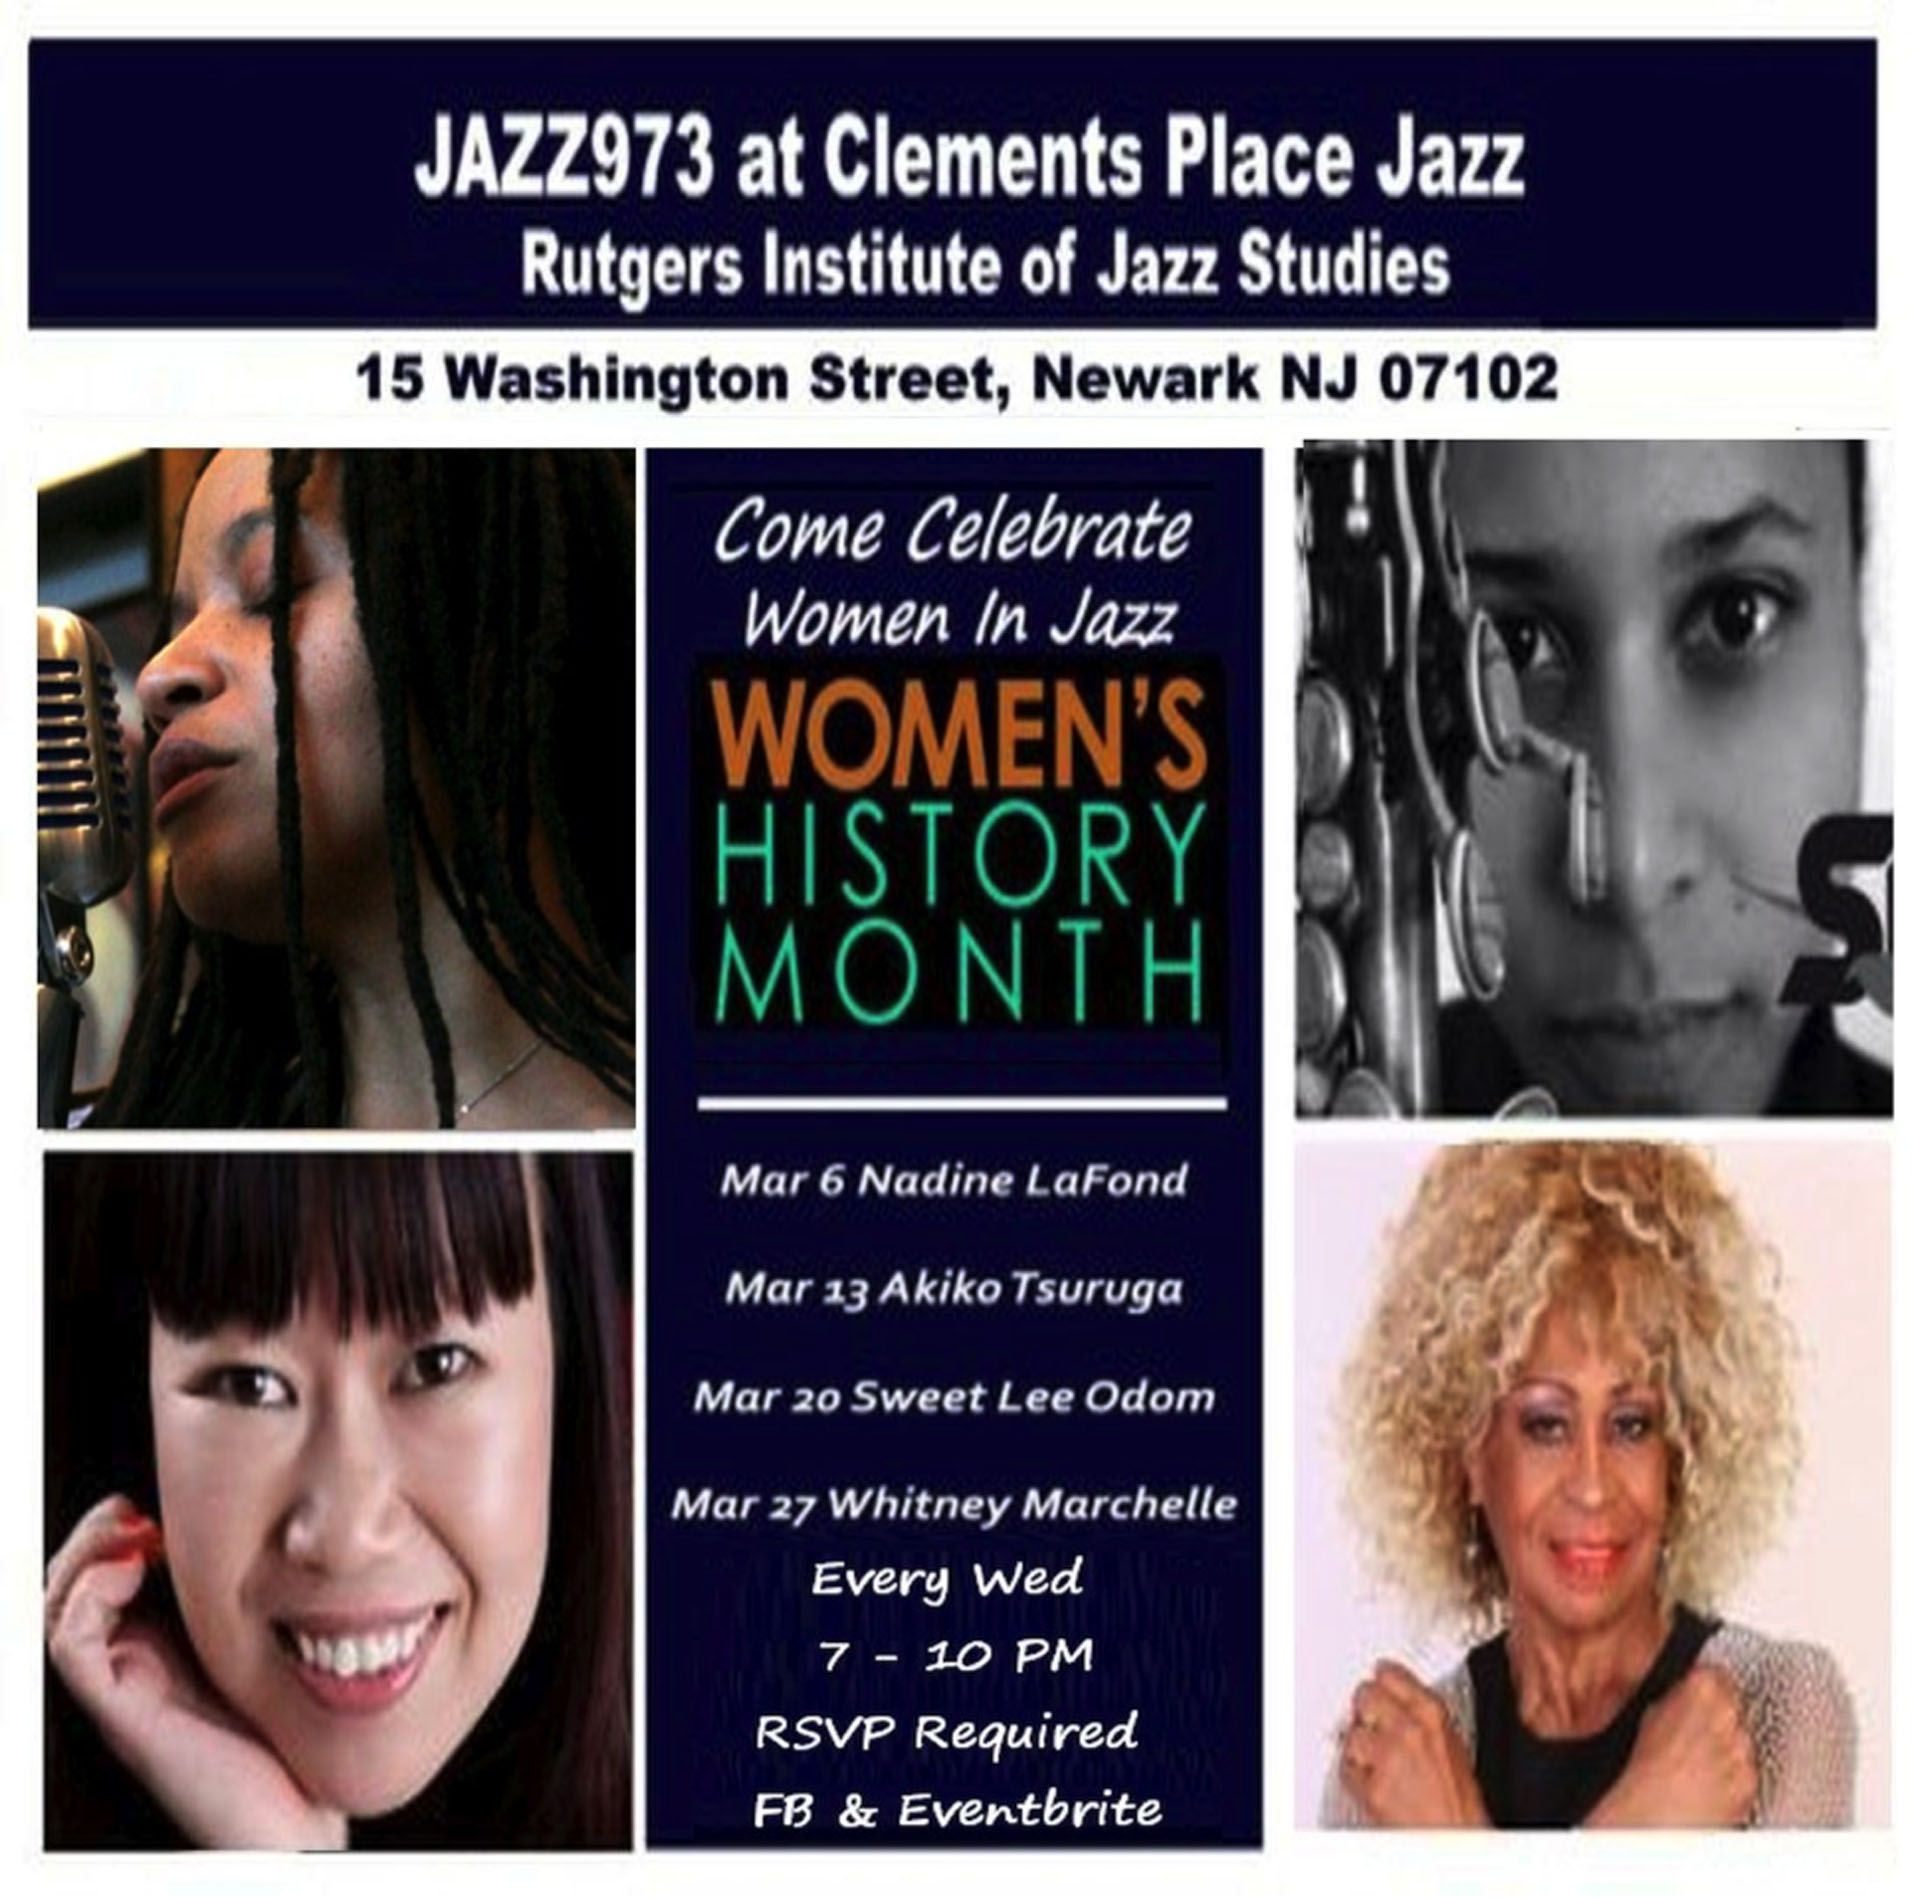 Jazz973 at Clements Place Jazz 15 Washington Street Newark NJ.jpg